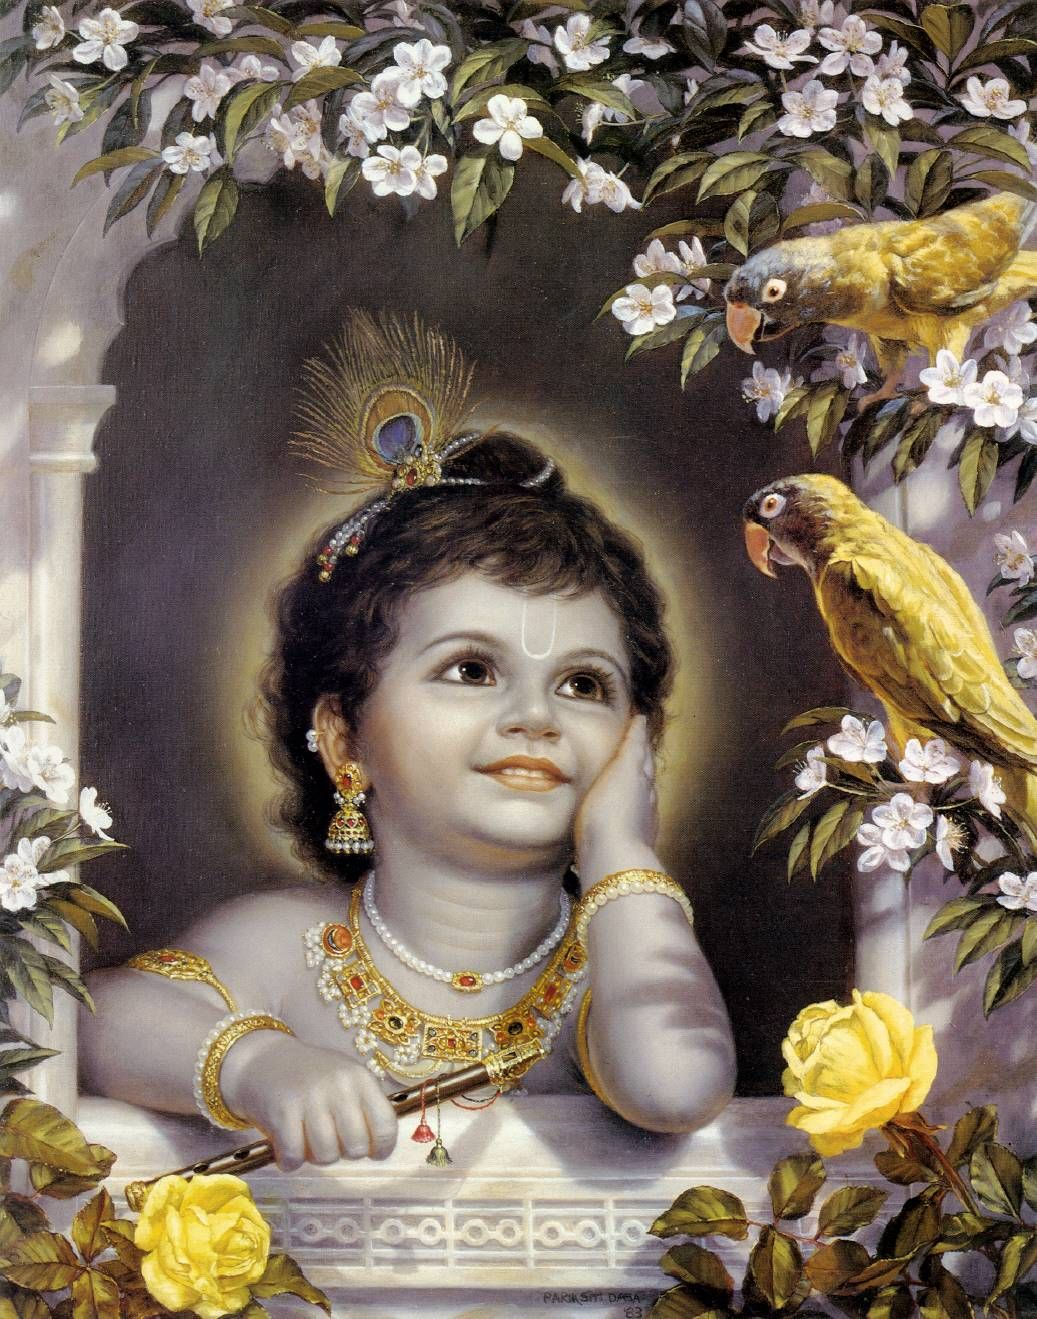 iskcon temple krishna paintings - Google Search | Projects to Try ...